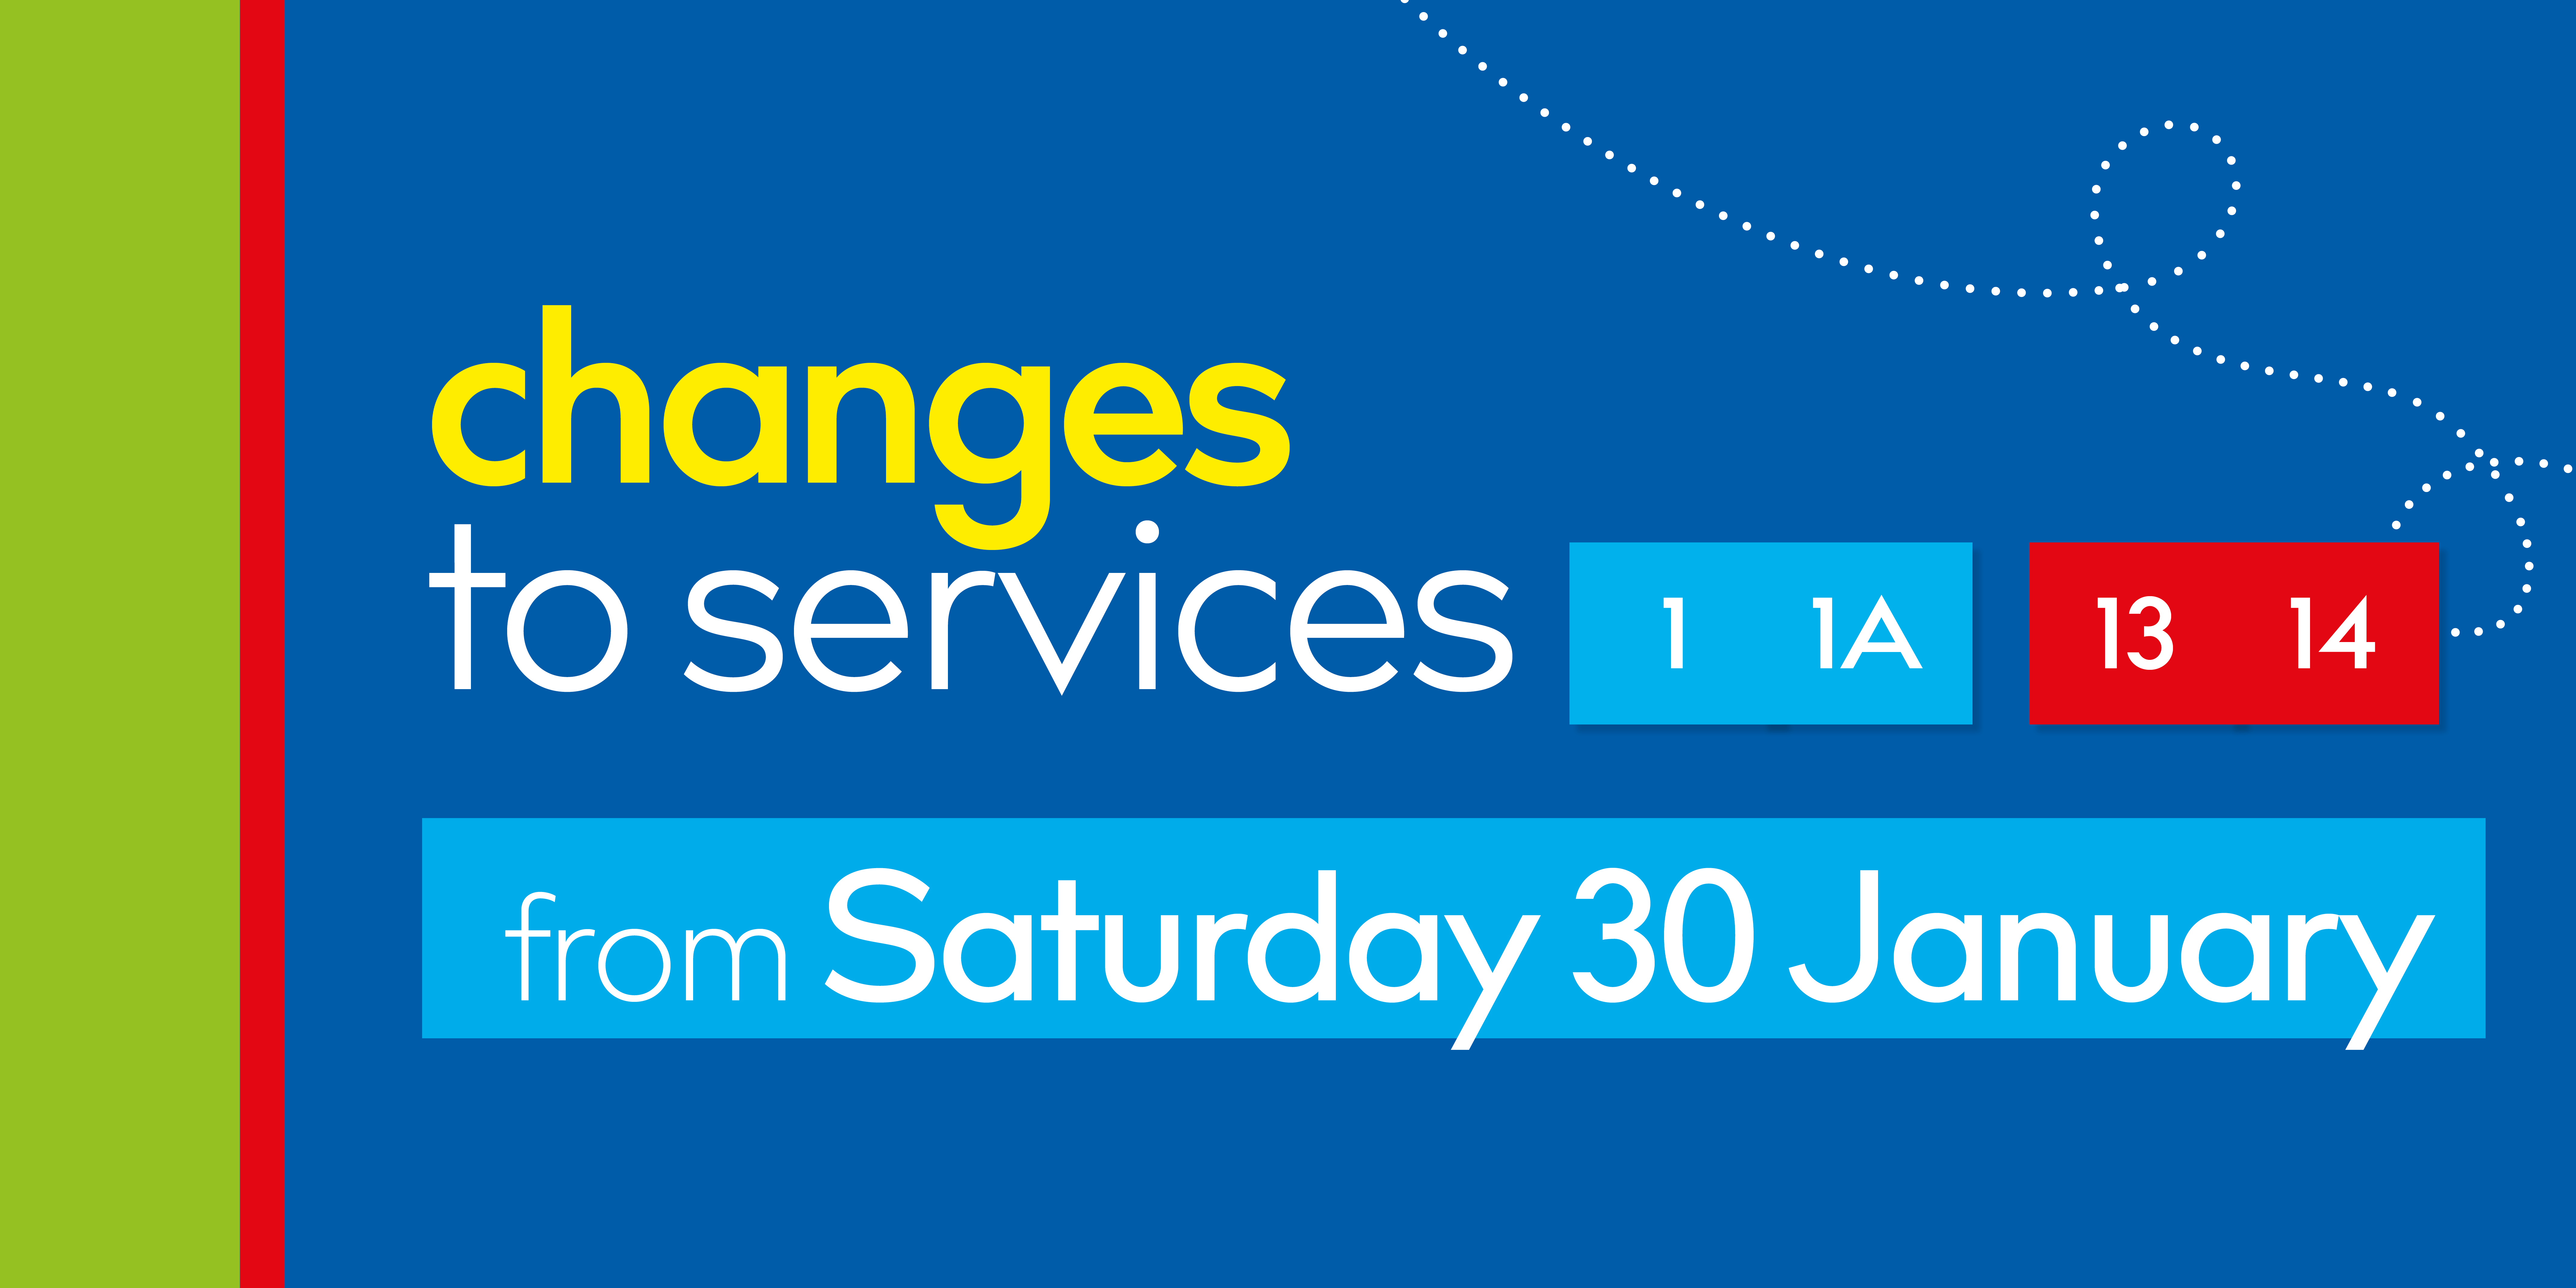 Changes to services 1/1A & 13/14